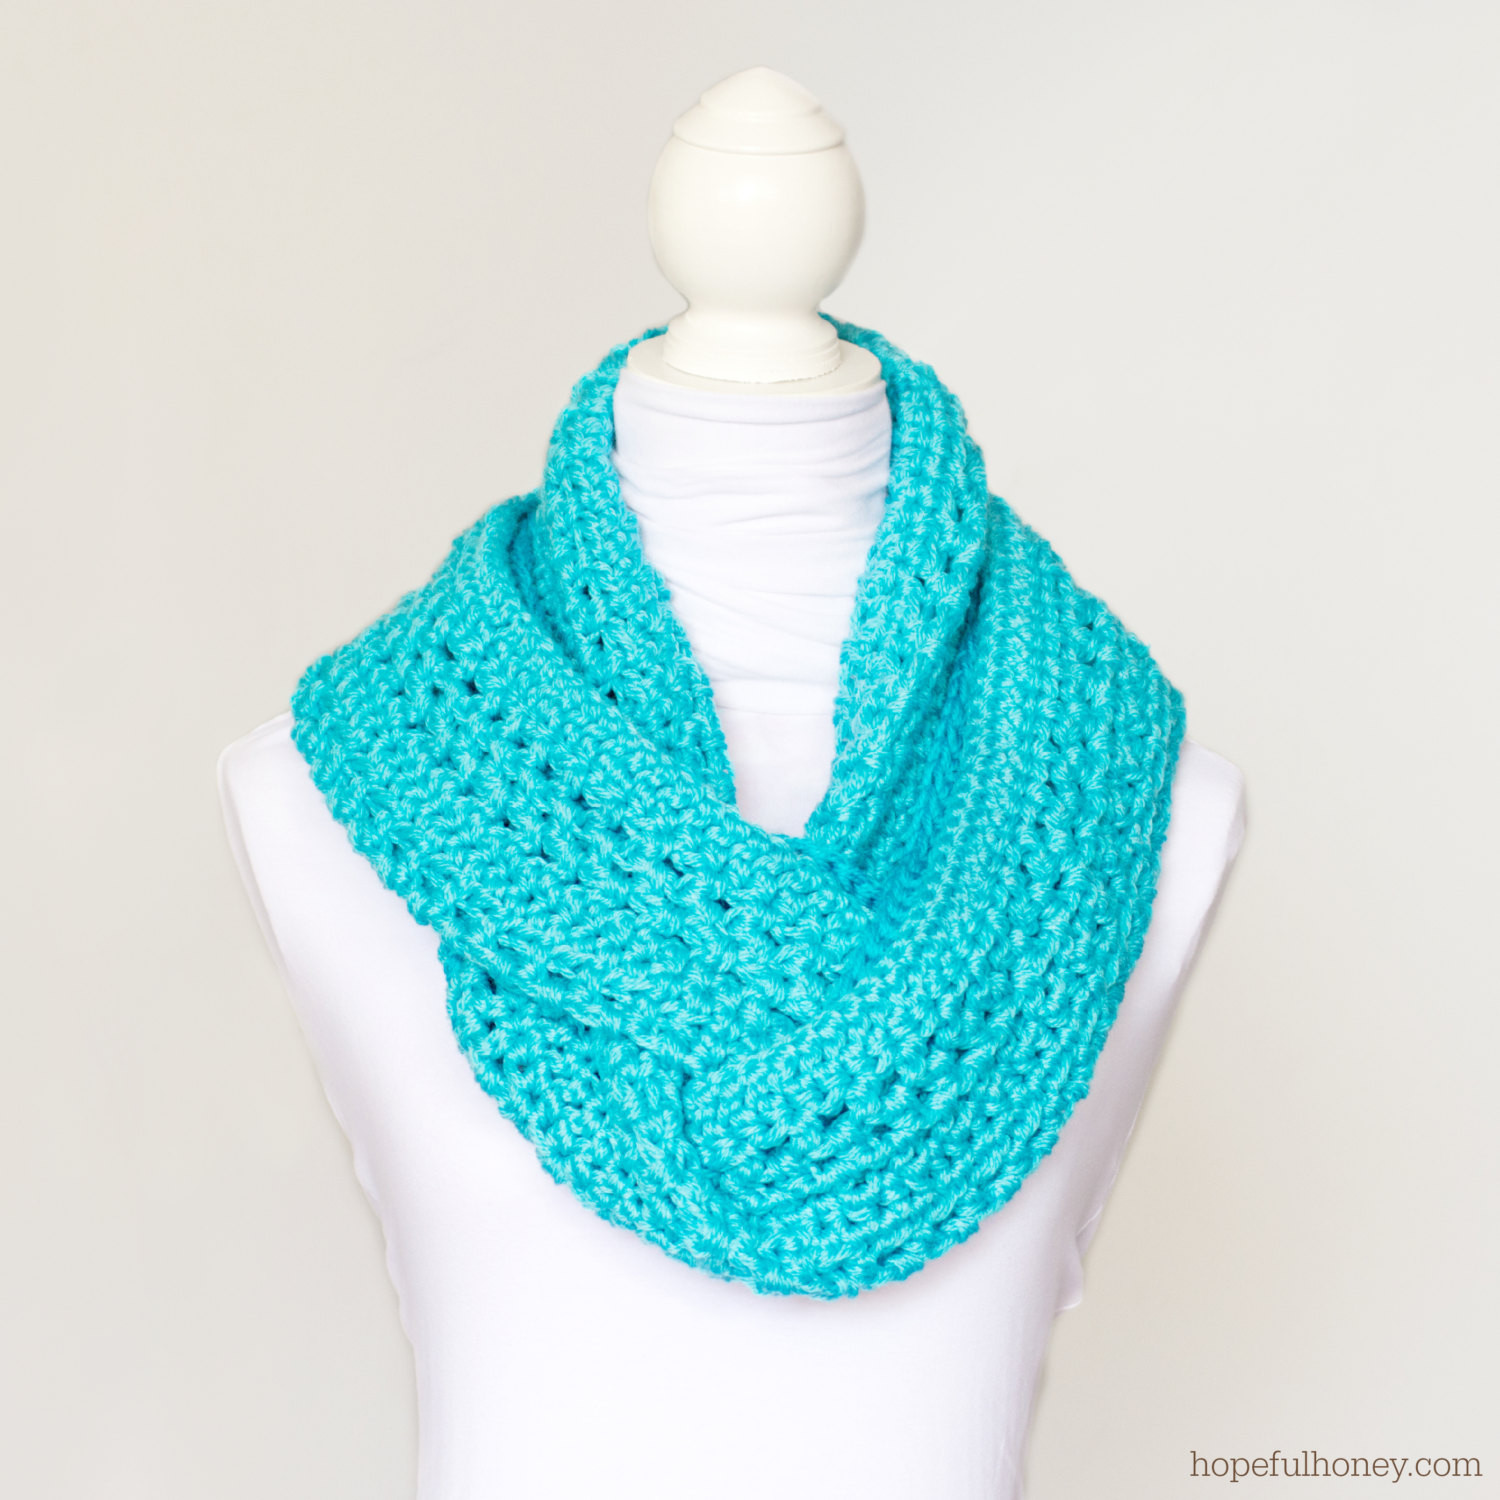 Different Crochet Patterns Beautiful Crochet Pattern Basic Circle Scarf Of Brilliant 48 Pictures Different Crochet Patterns